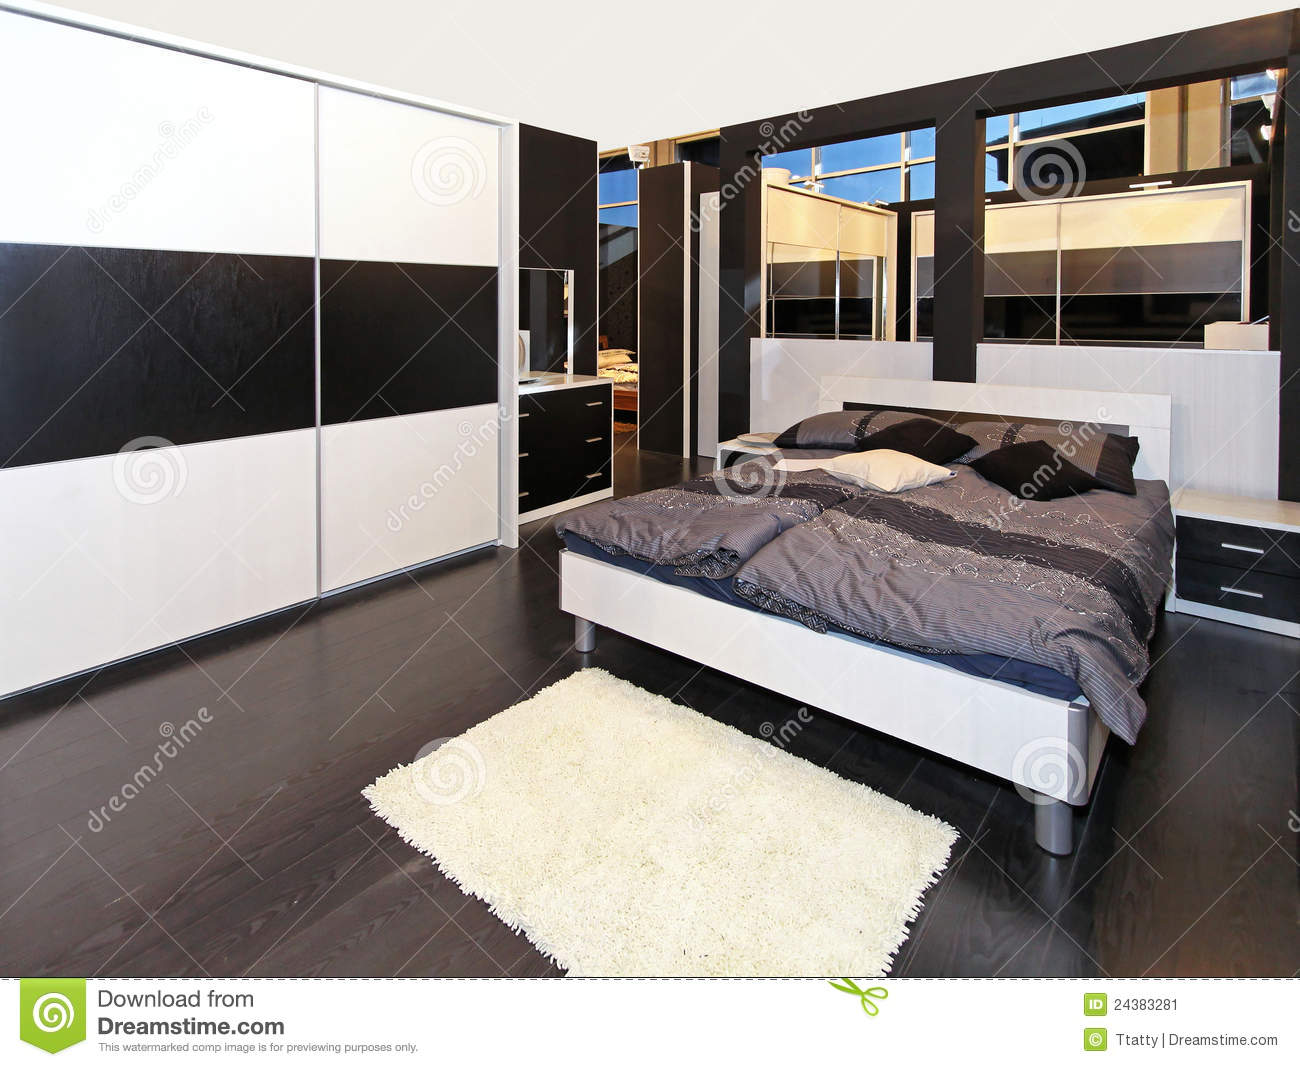 graues schlafzimmer stockbild bild 24383281. Black Bedroom Furniture Sets. Home Design Ideas